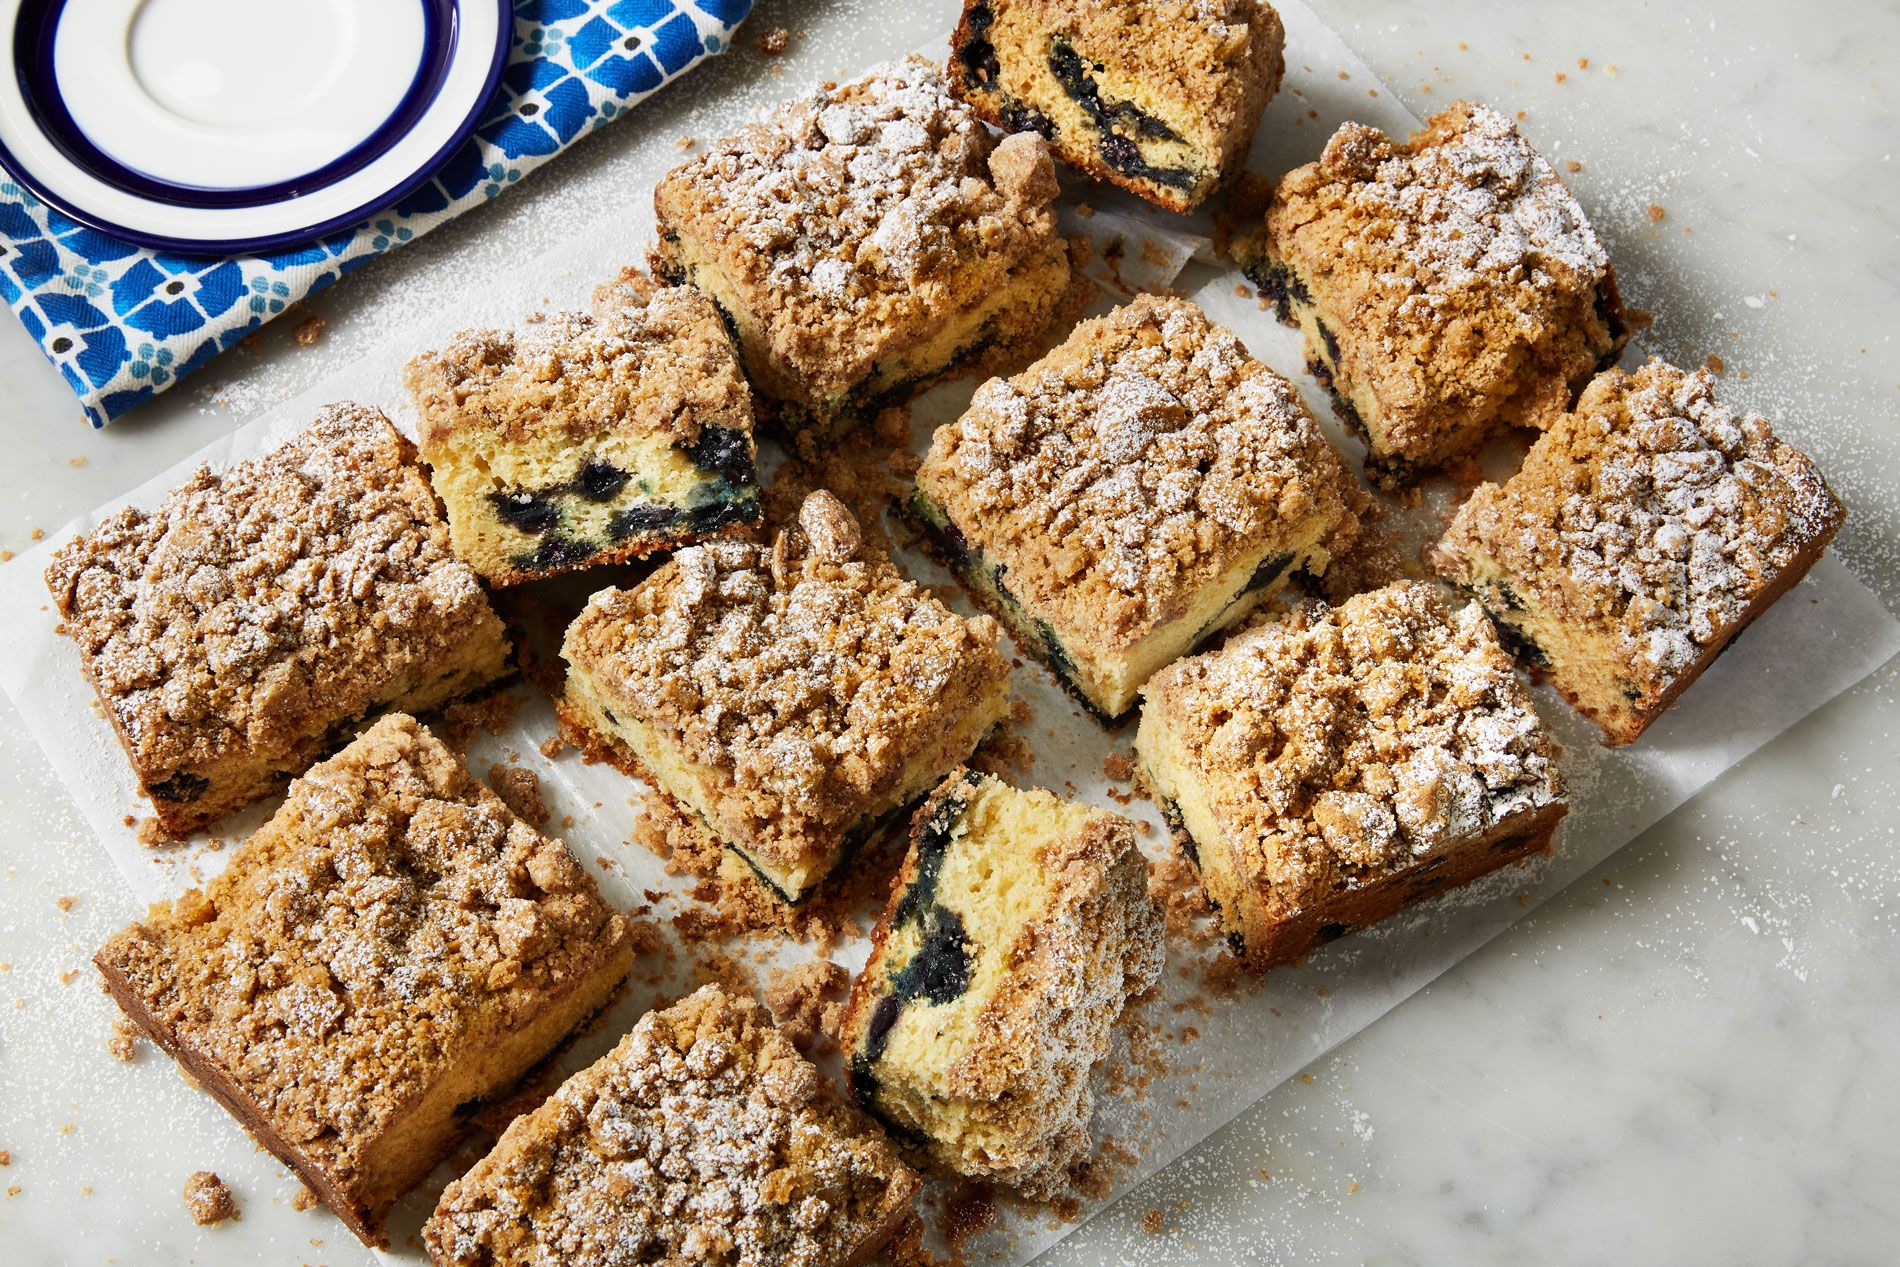 Best Blueberry Coffee Cake Recipe How To Make Blueberry Coffee Cake